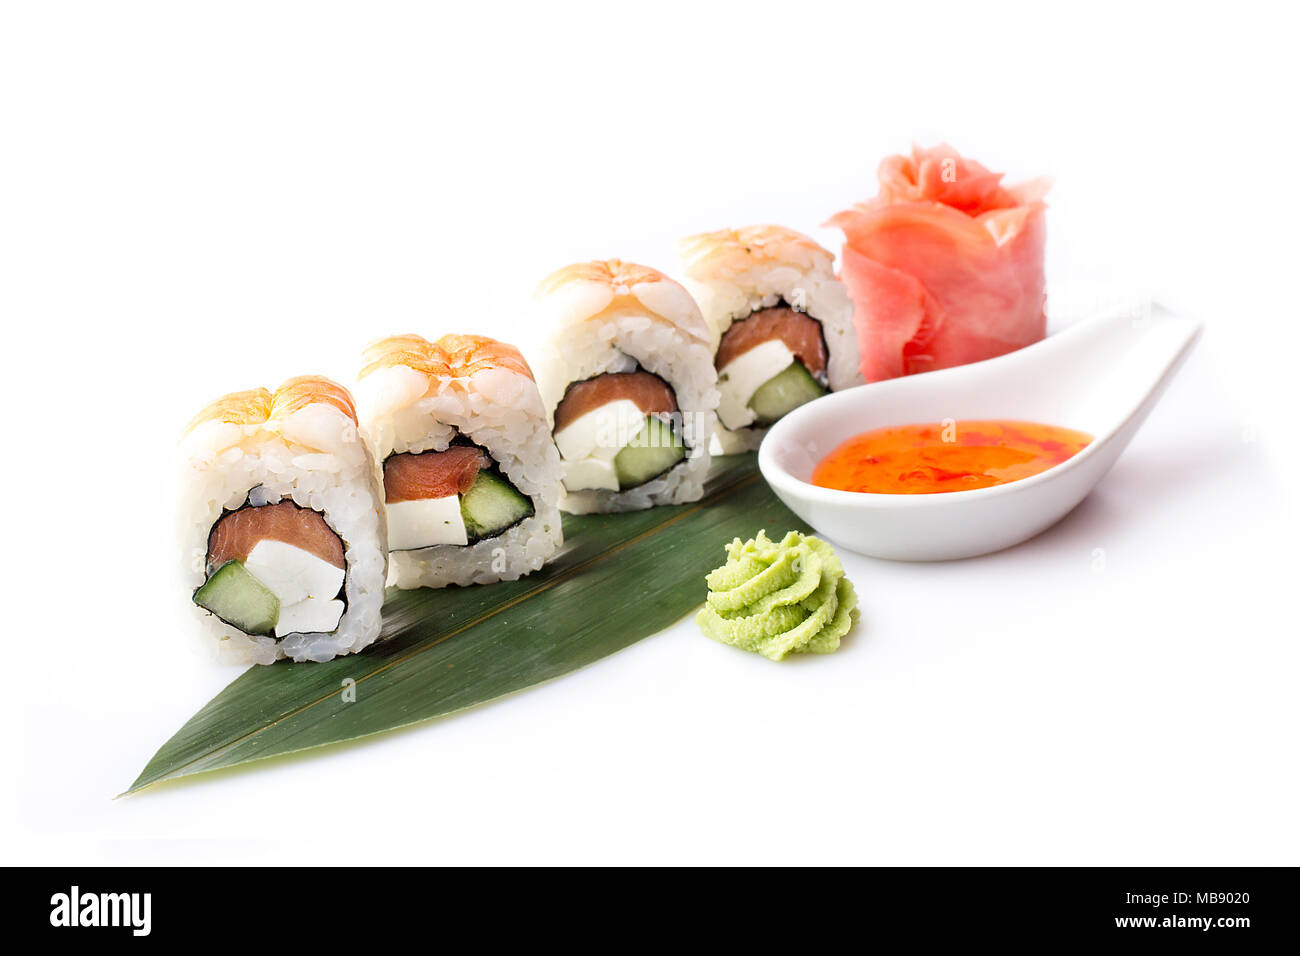 A fresh appetizing set of sushi rolls with shrimp laid out on a banana leaf. Stock Photo